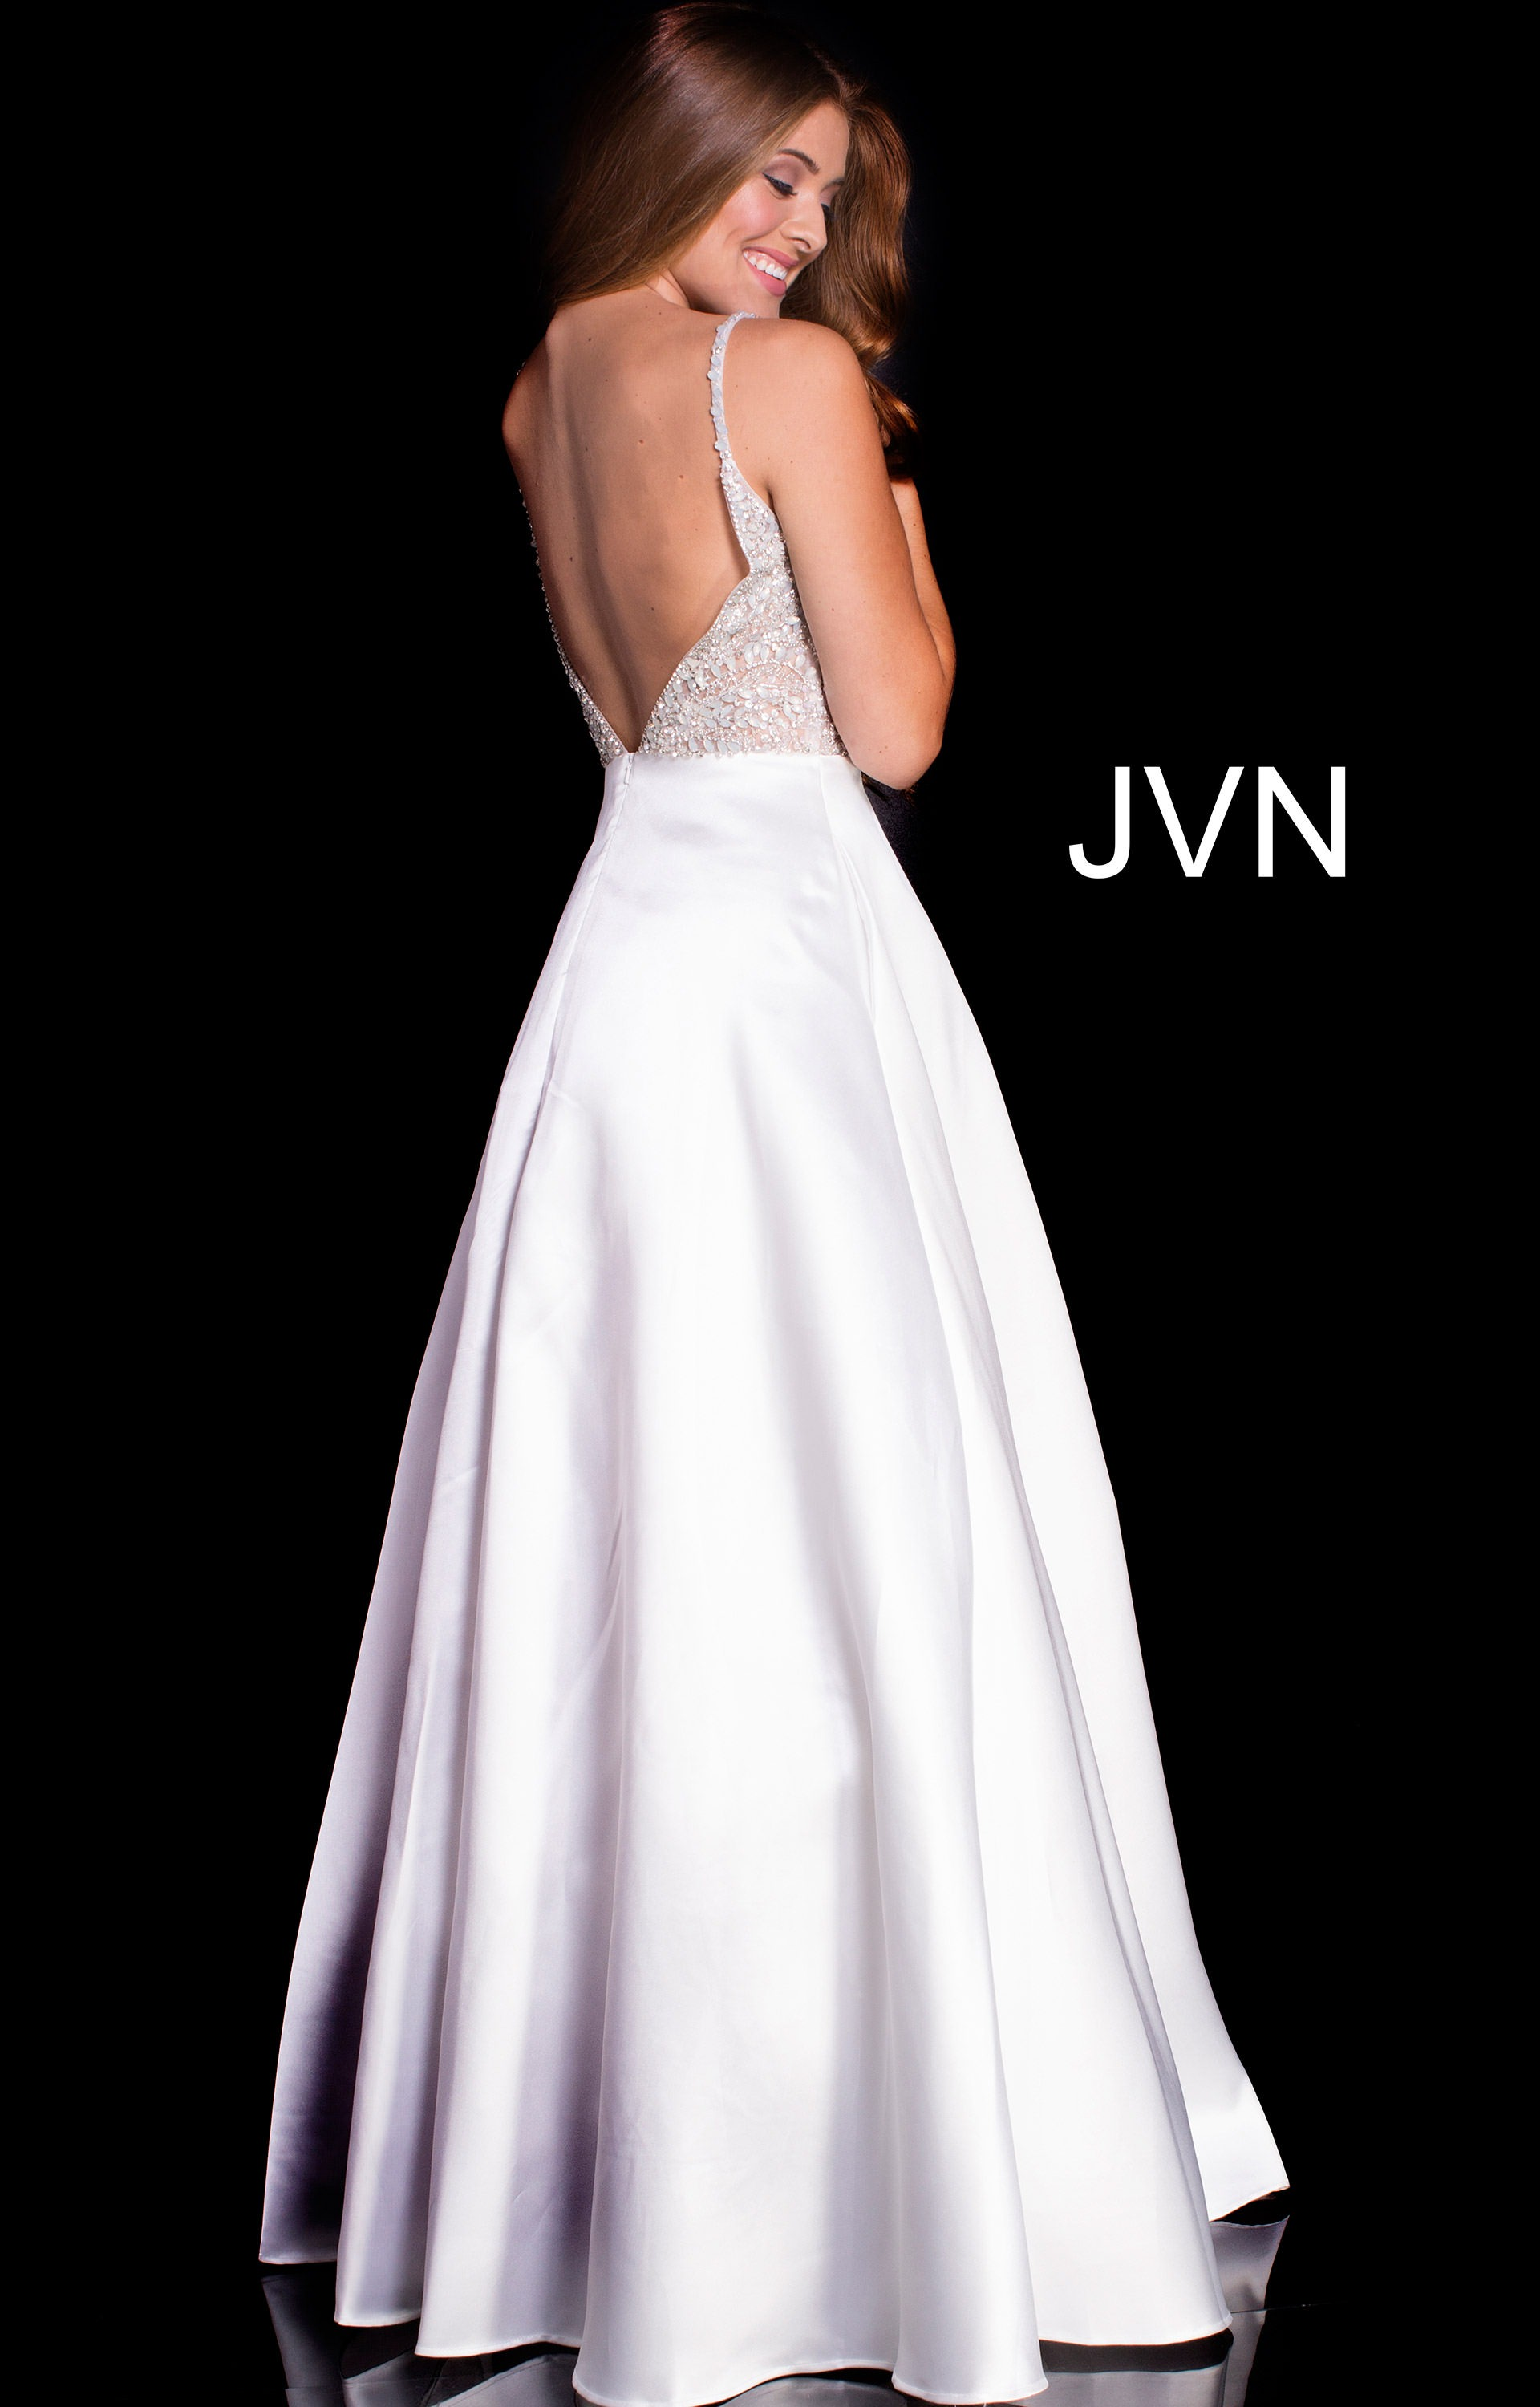 d064aaee57 Jovani Ball Gown With Pockets - Gomes Weine AG